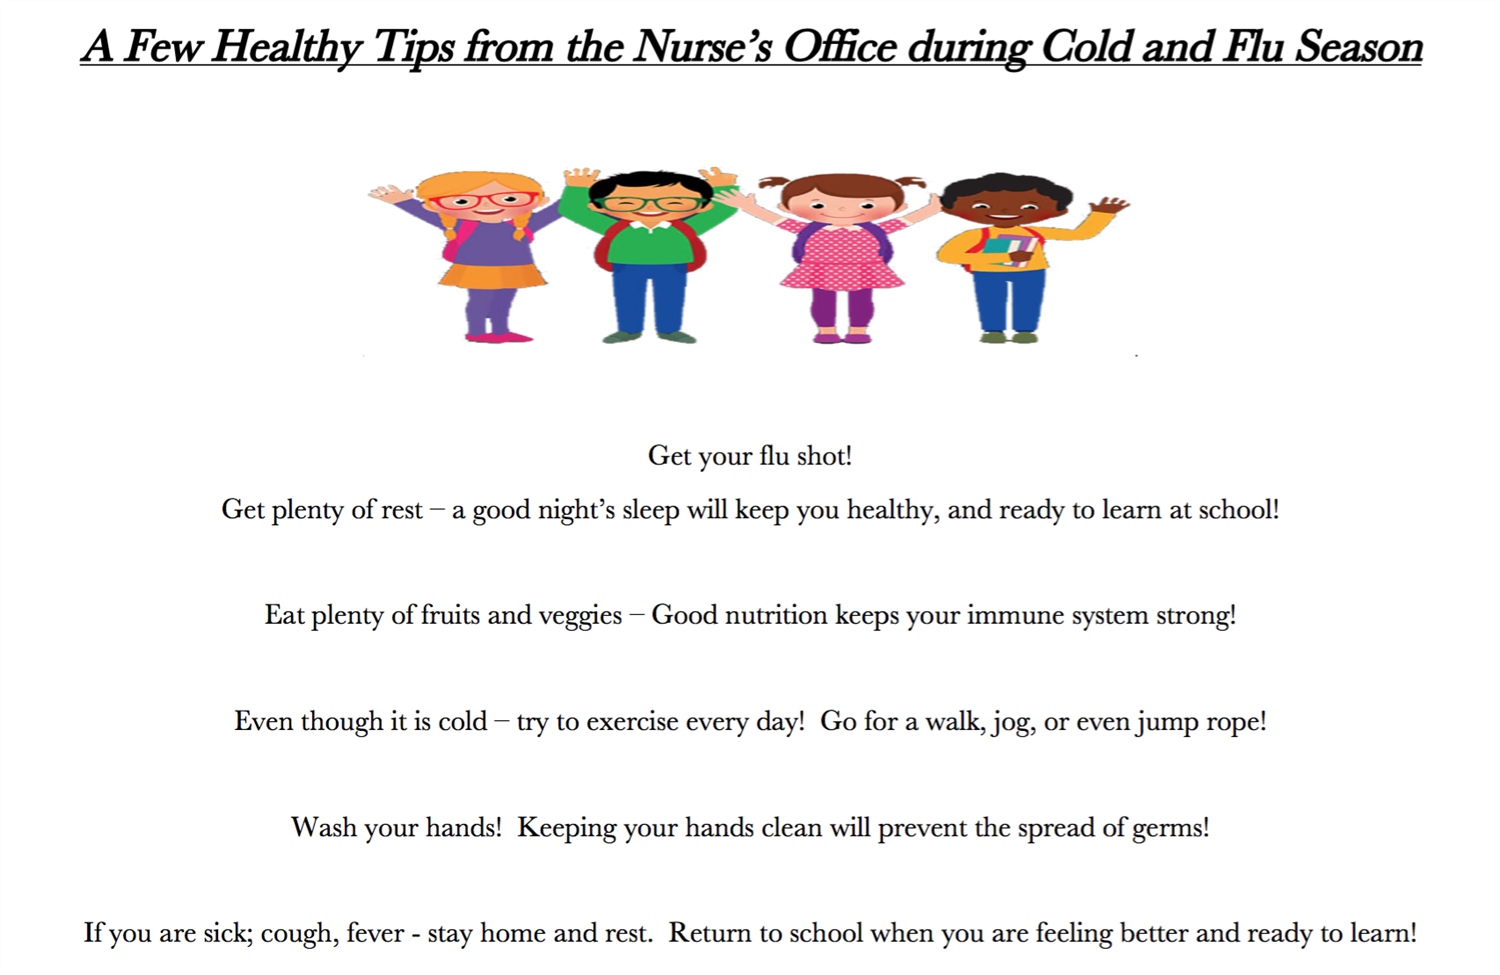 tips from nurse